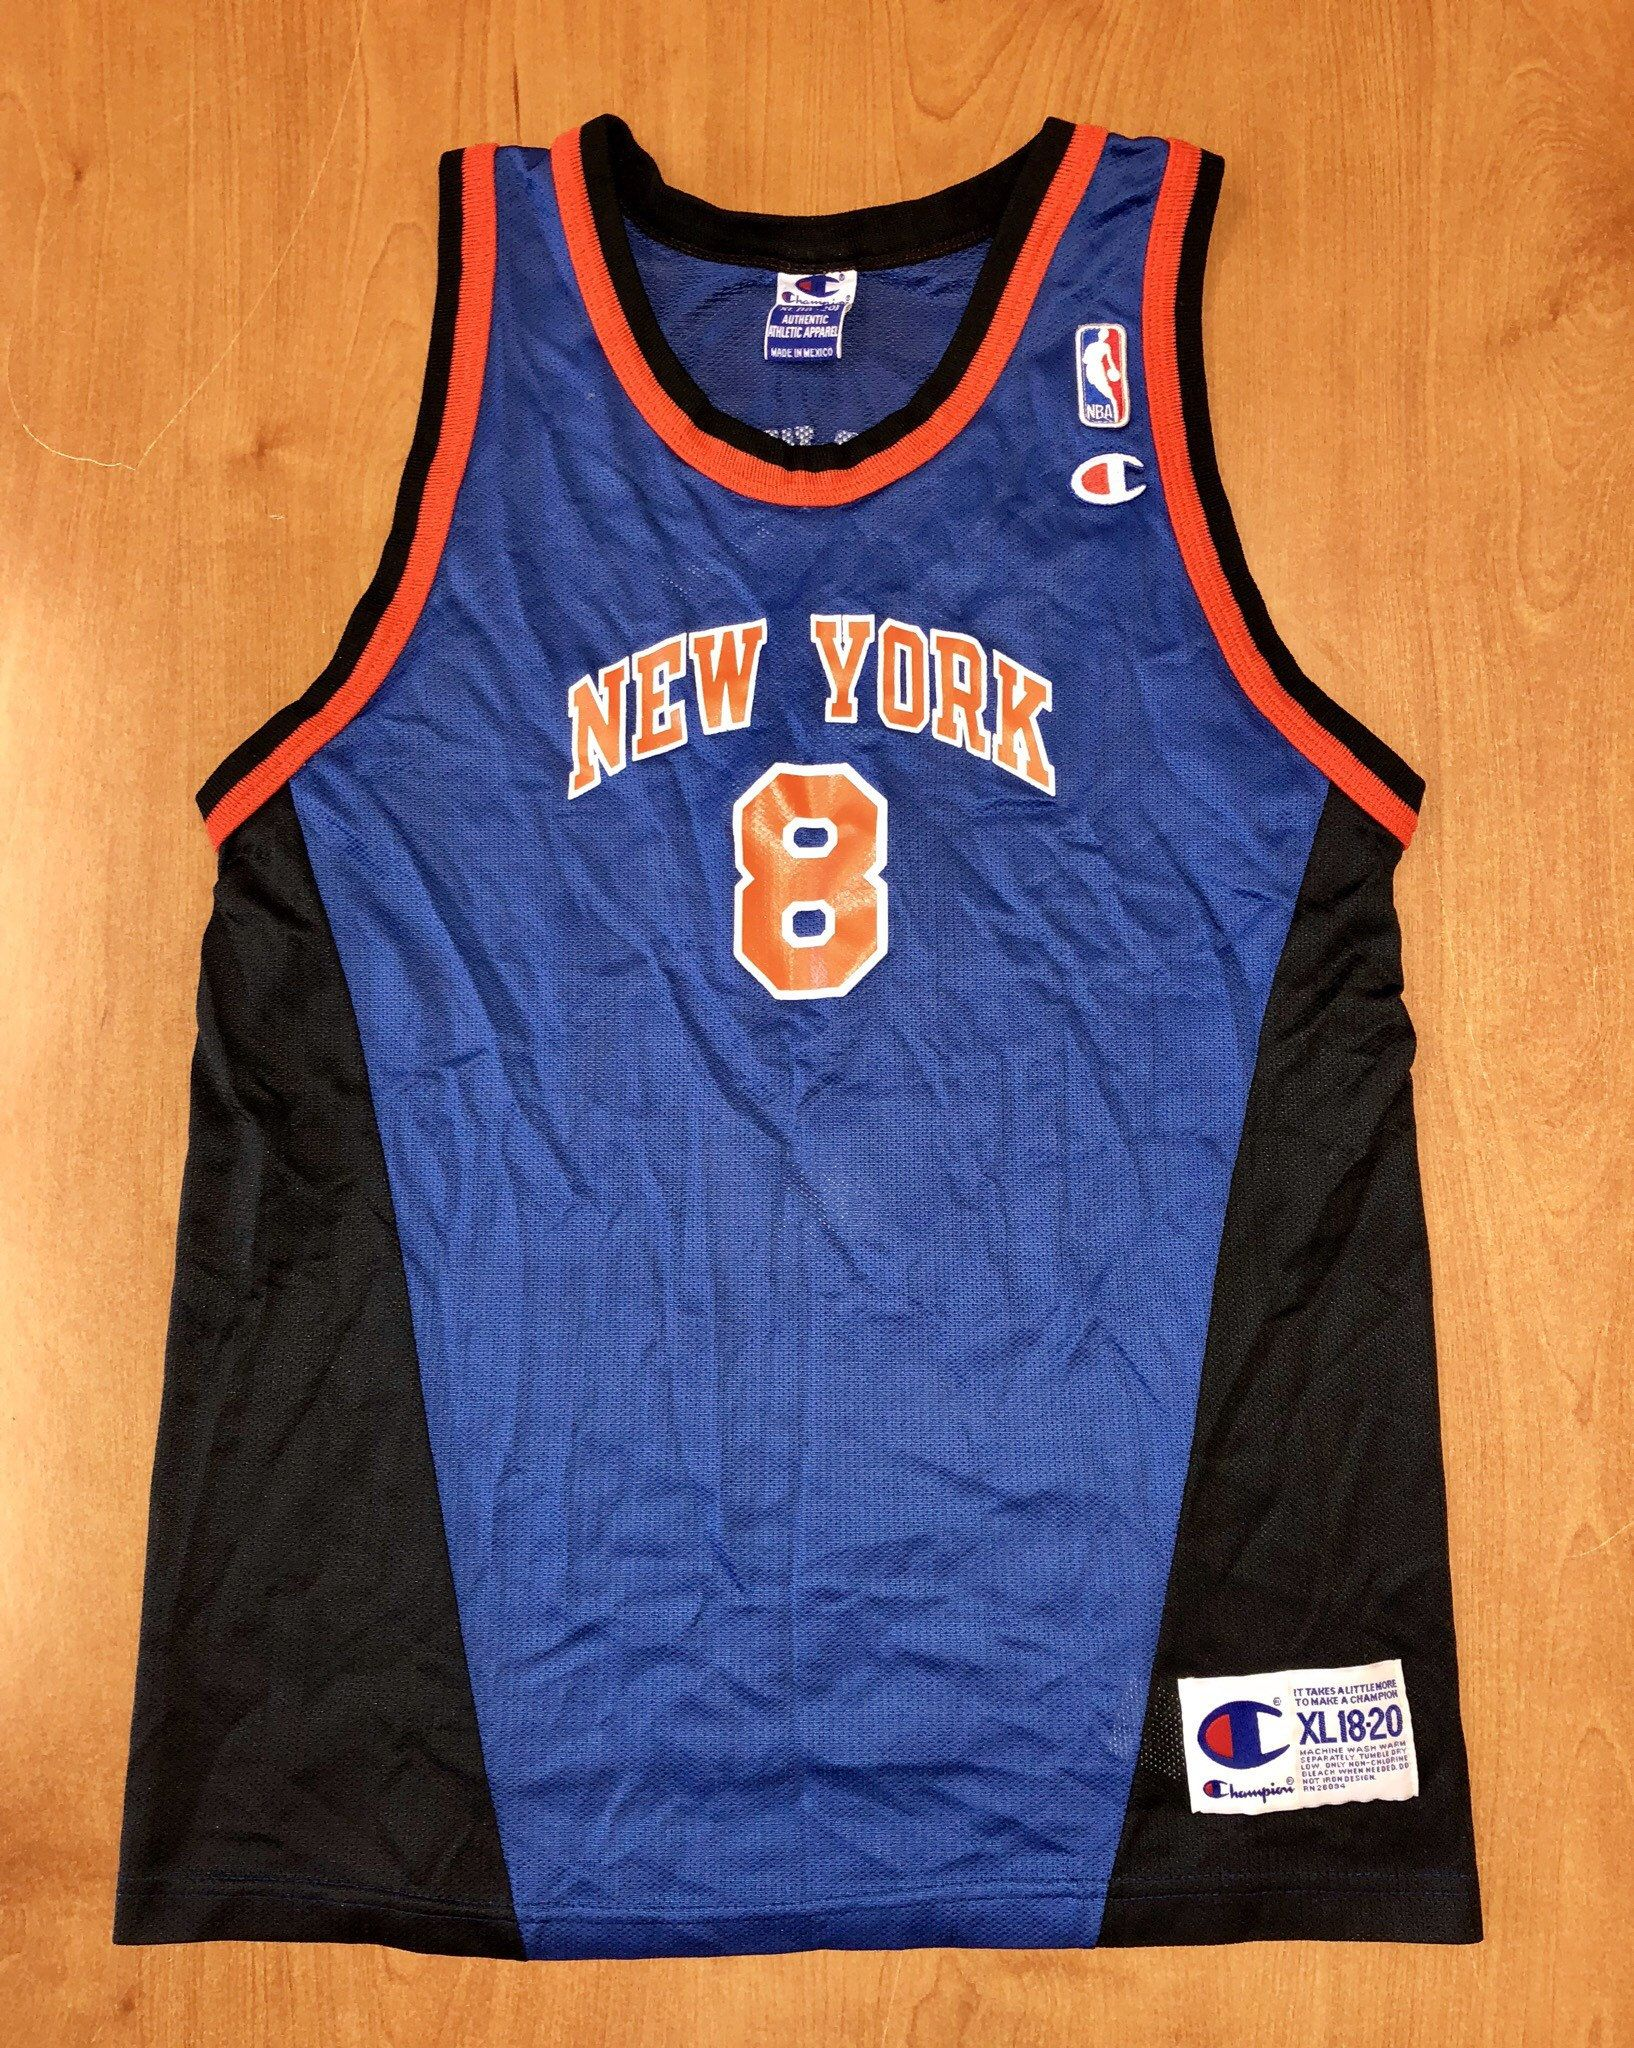 Vintage 1998 Latrell Sprewell New York Knicks Champion Jersey Size Youth XL  kids shirt charles oakley nba finals penny hardaway alabama tide by ... 37794bed2